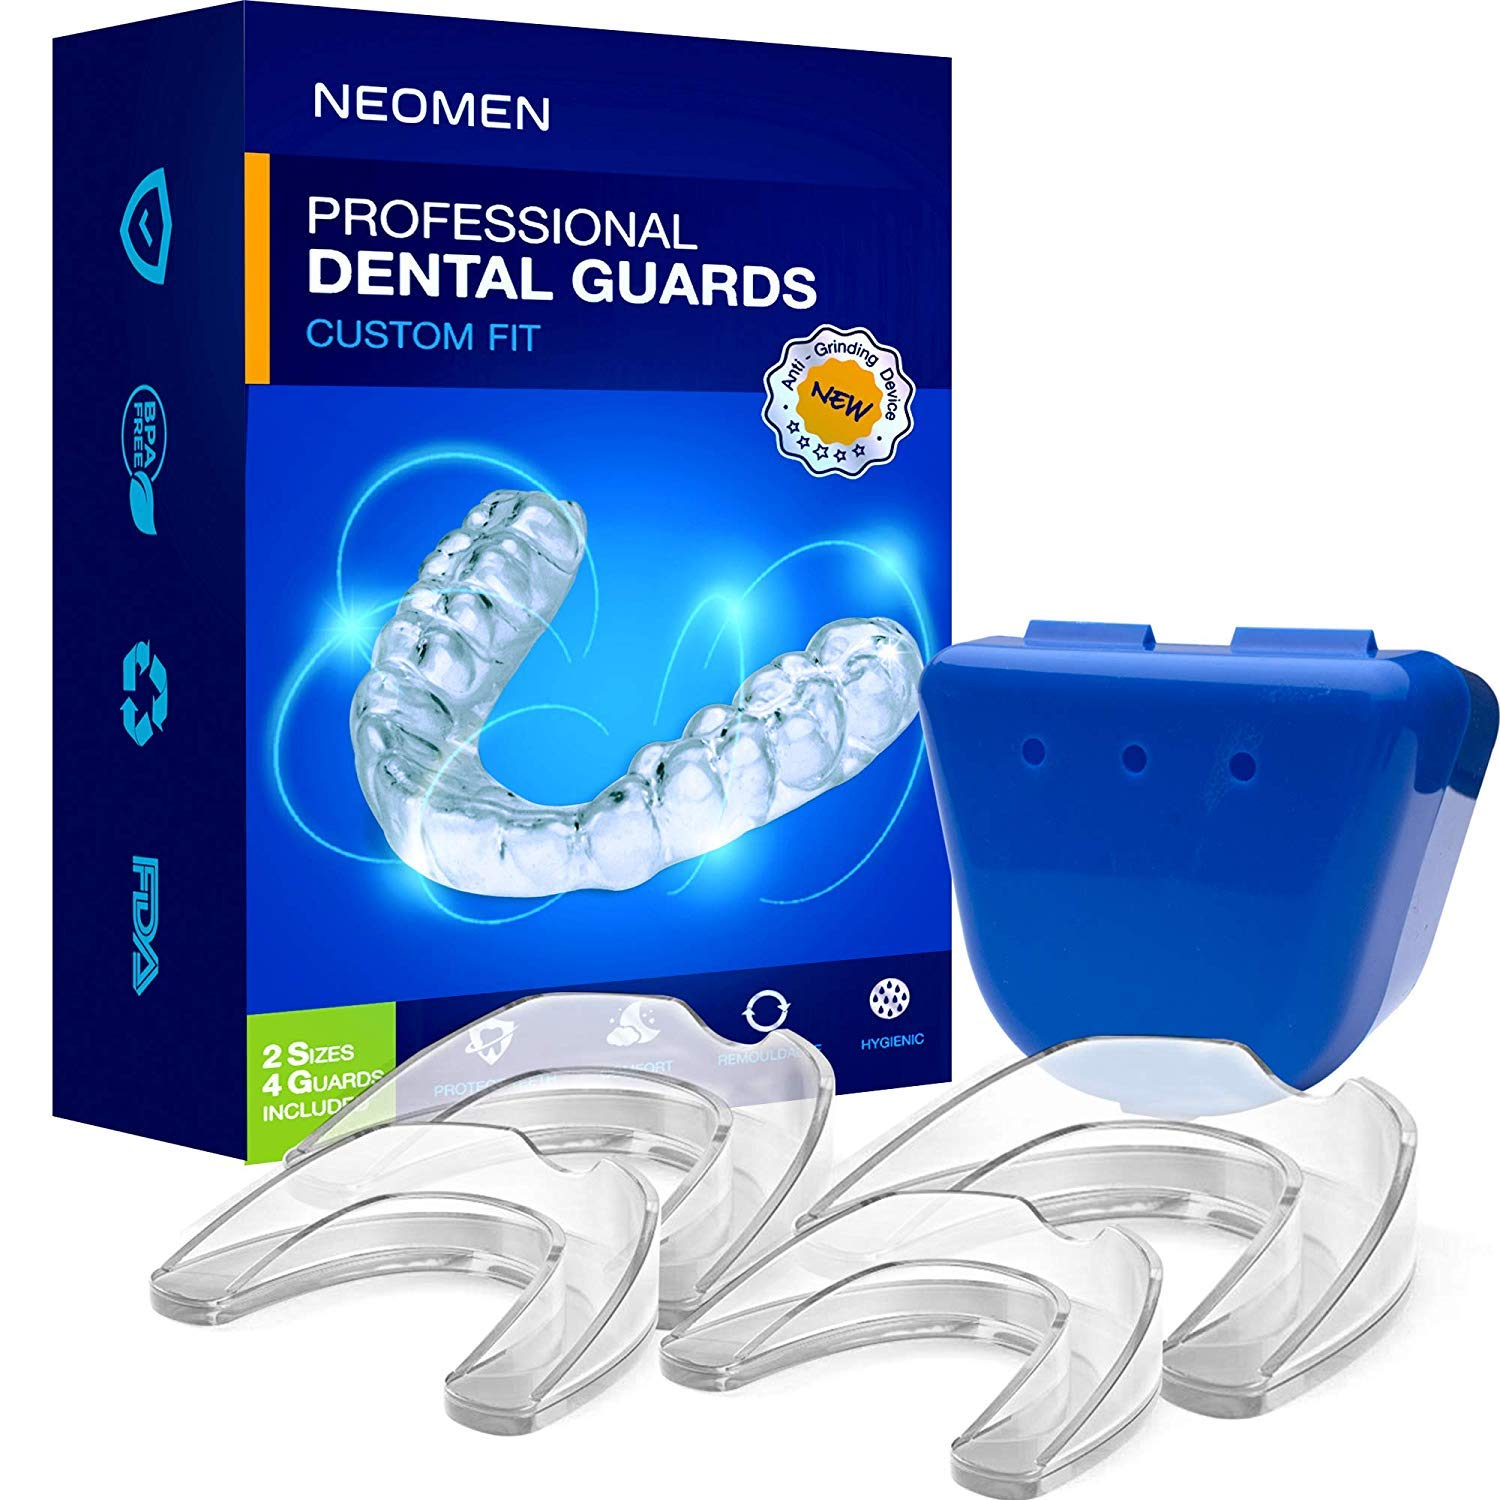 Neomen Professional Dental Guard - 2 Sizes, Pack of 4 - Upgraded Mouth Guard For Teeth Grinding, Anti Grinding Dental Night Guard, Stops Bruxism, Tmj & Eliminates Teeth Clenching, 100% Satisfaction 71v7WPVMRkL